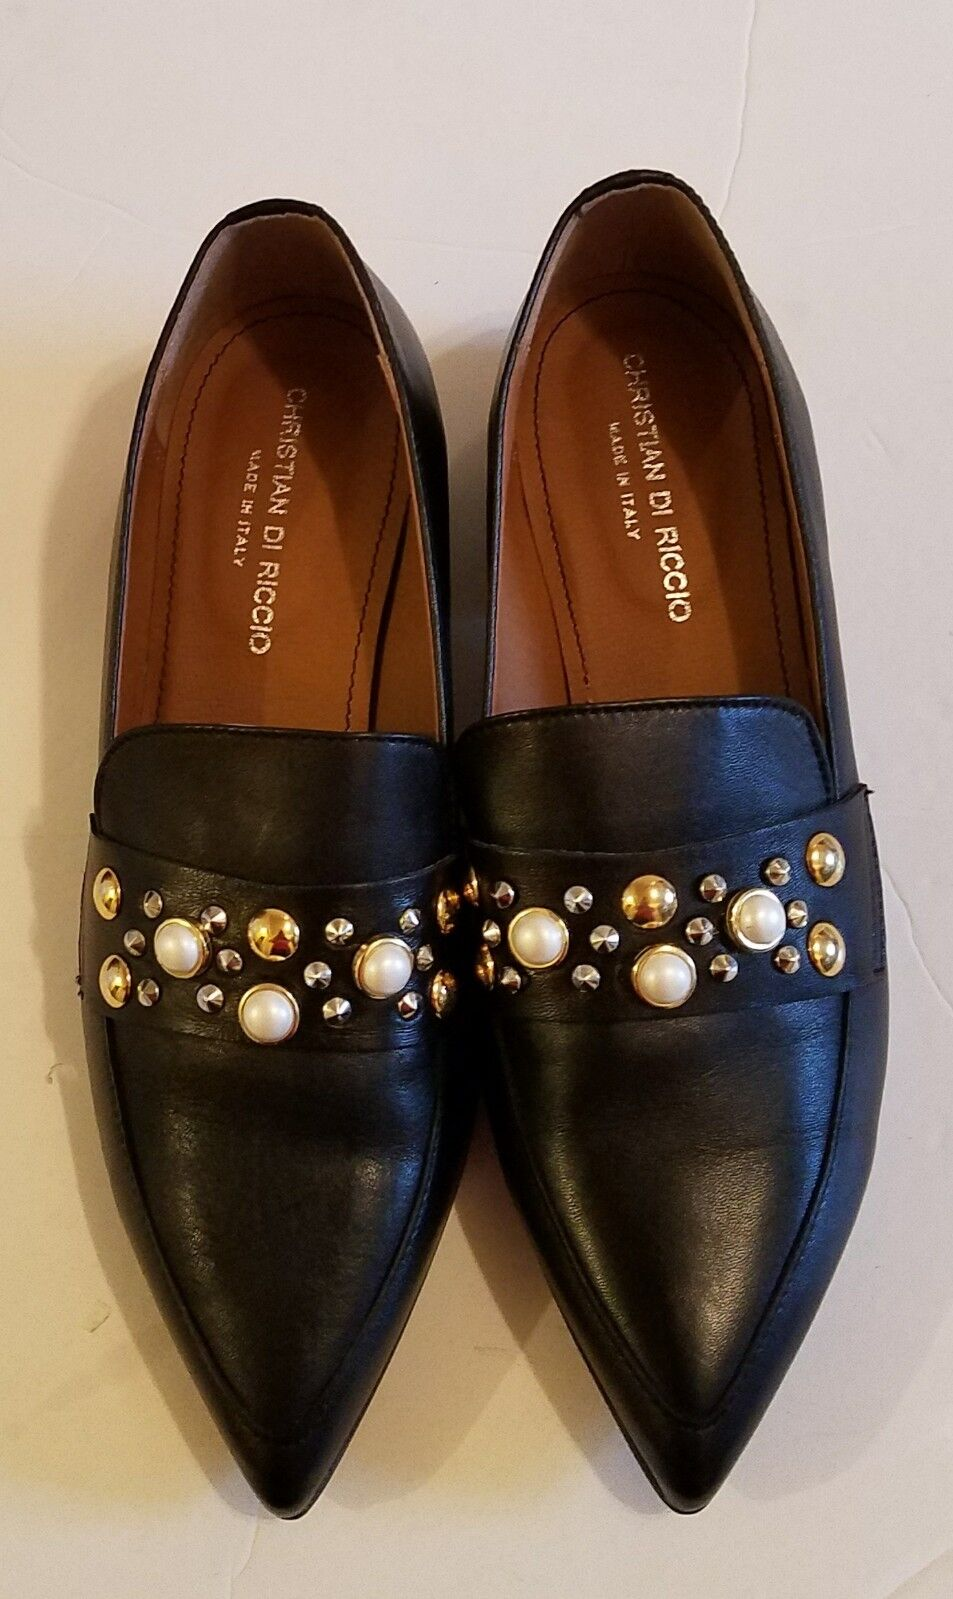 NWOB Christian  Di Riccio Women's Loafers with with with Studs Black sz 38 (7.5 8 ) 5f1433